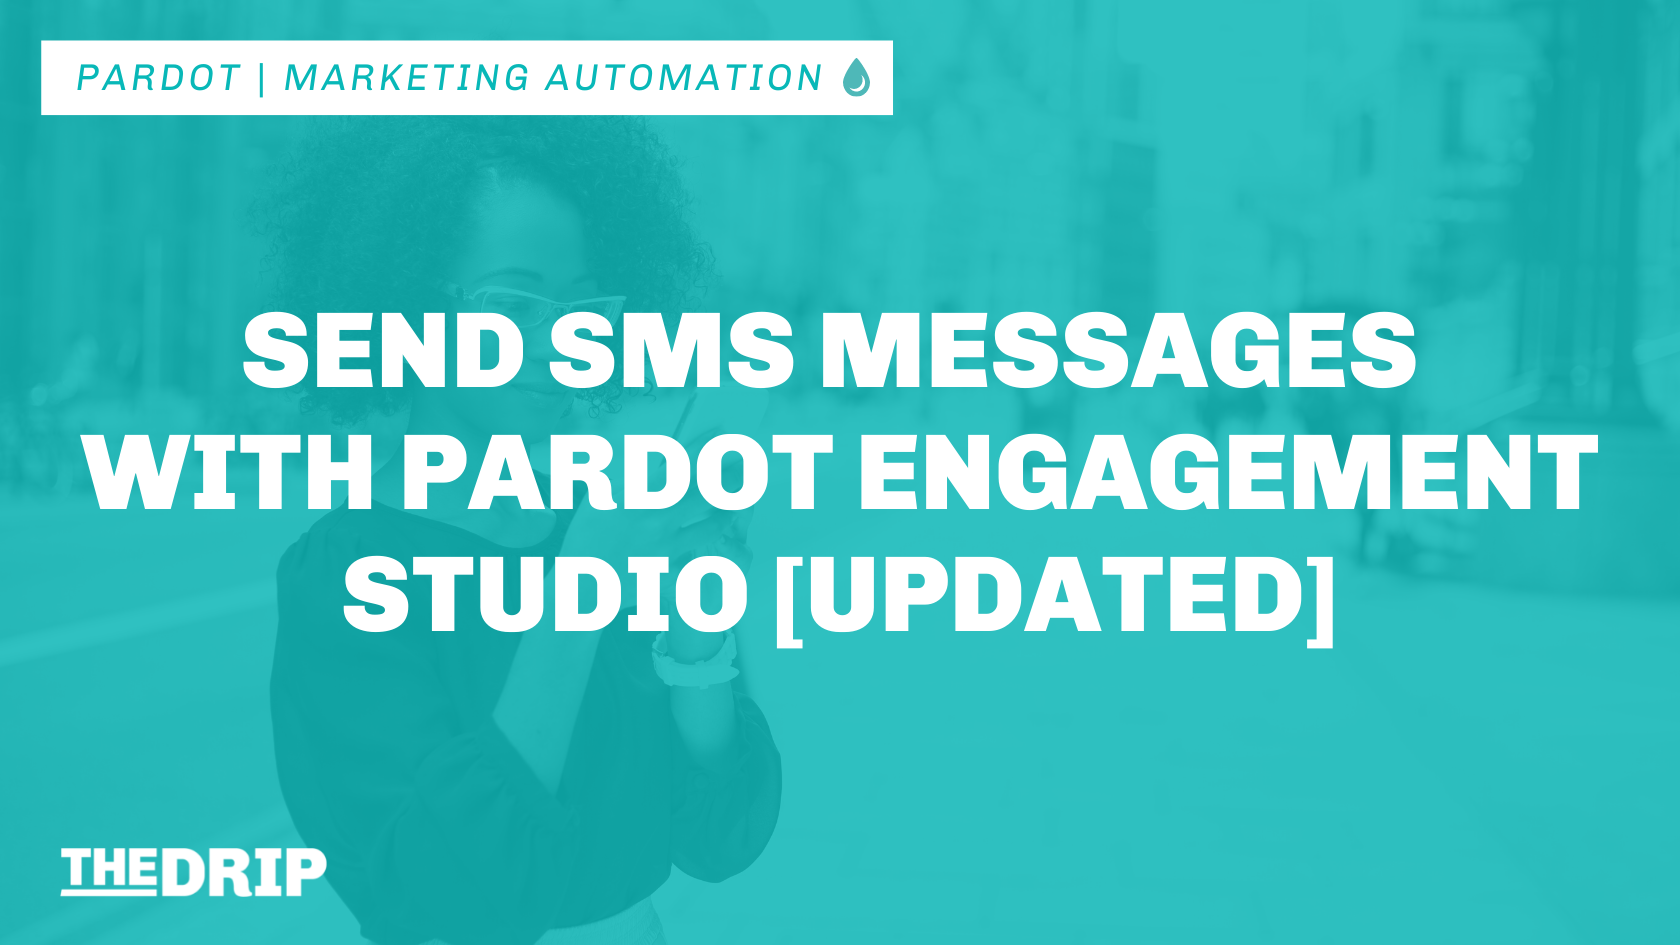 Send SMS Messages with Pardot Engagement Studio [Updated]